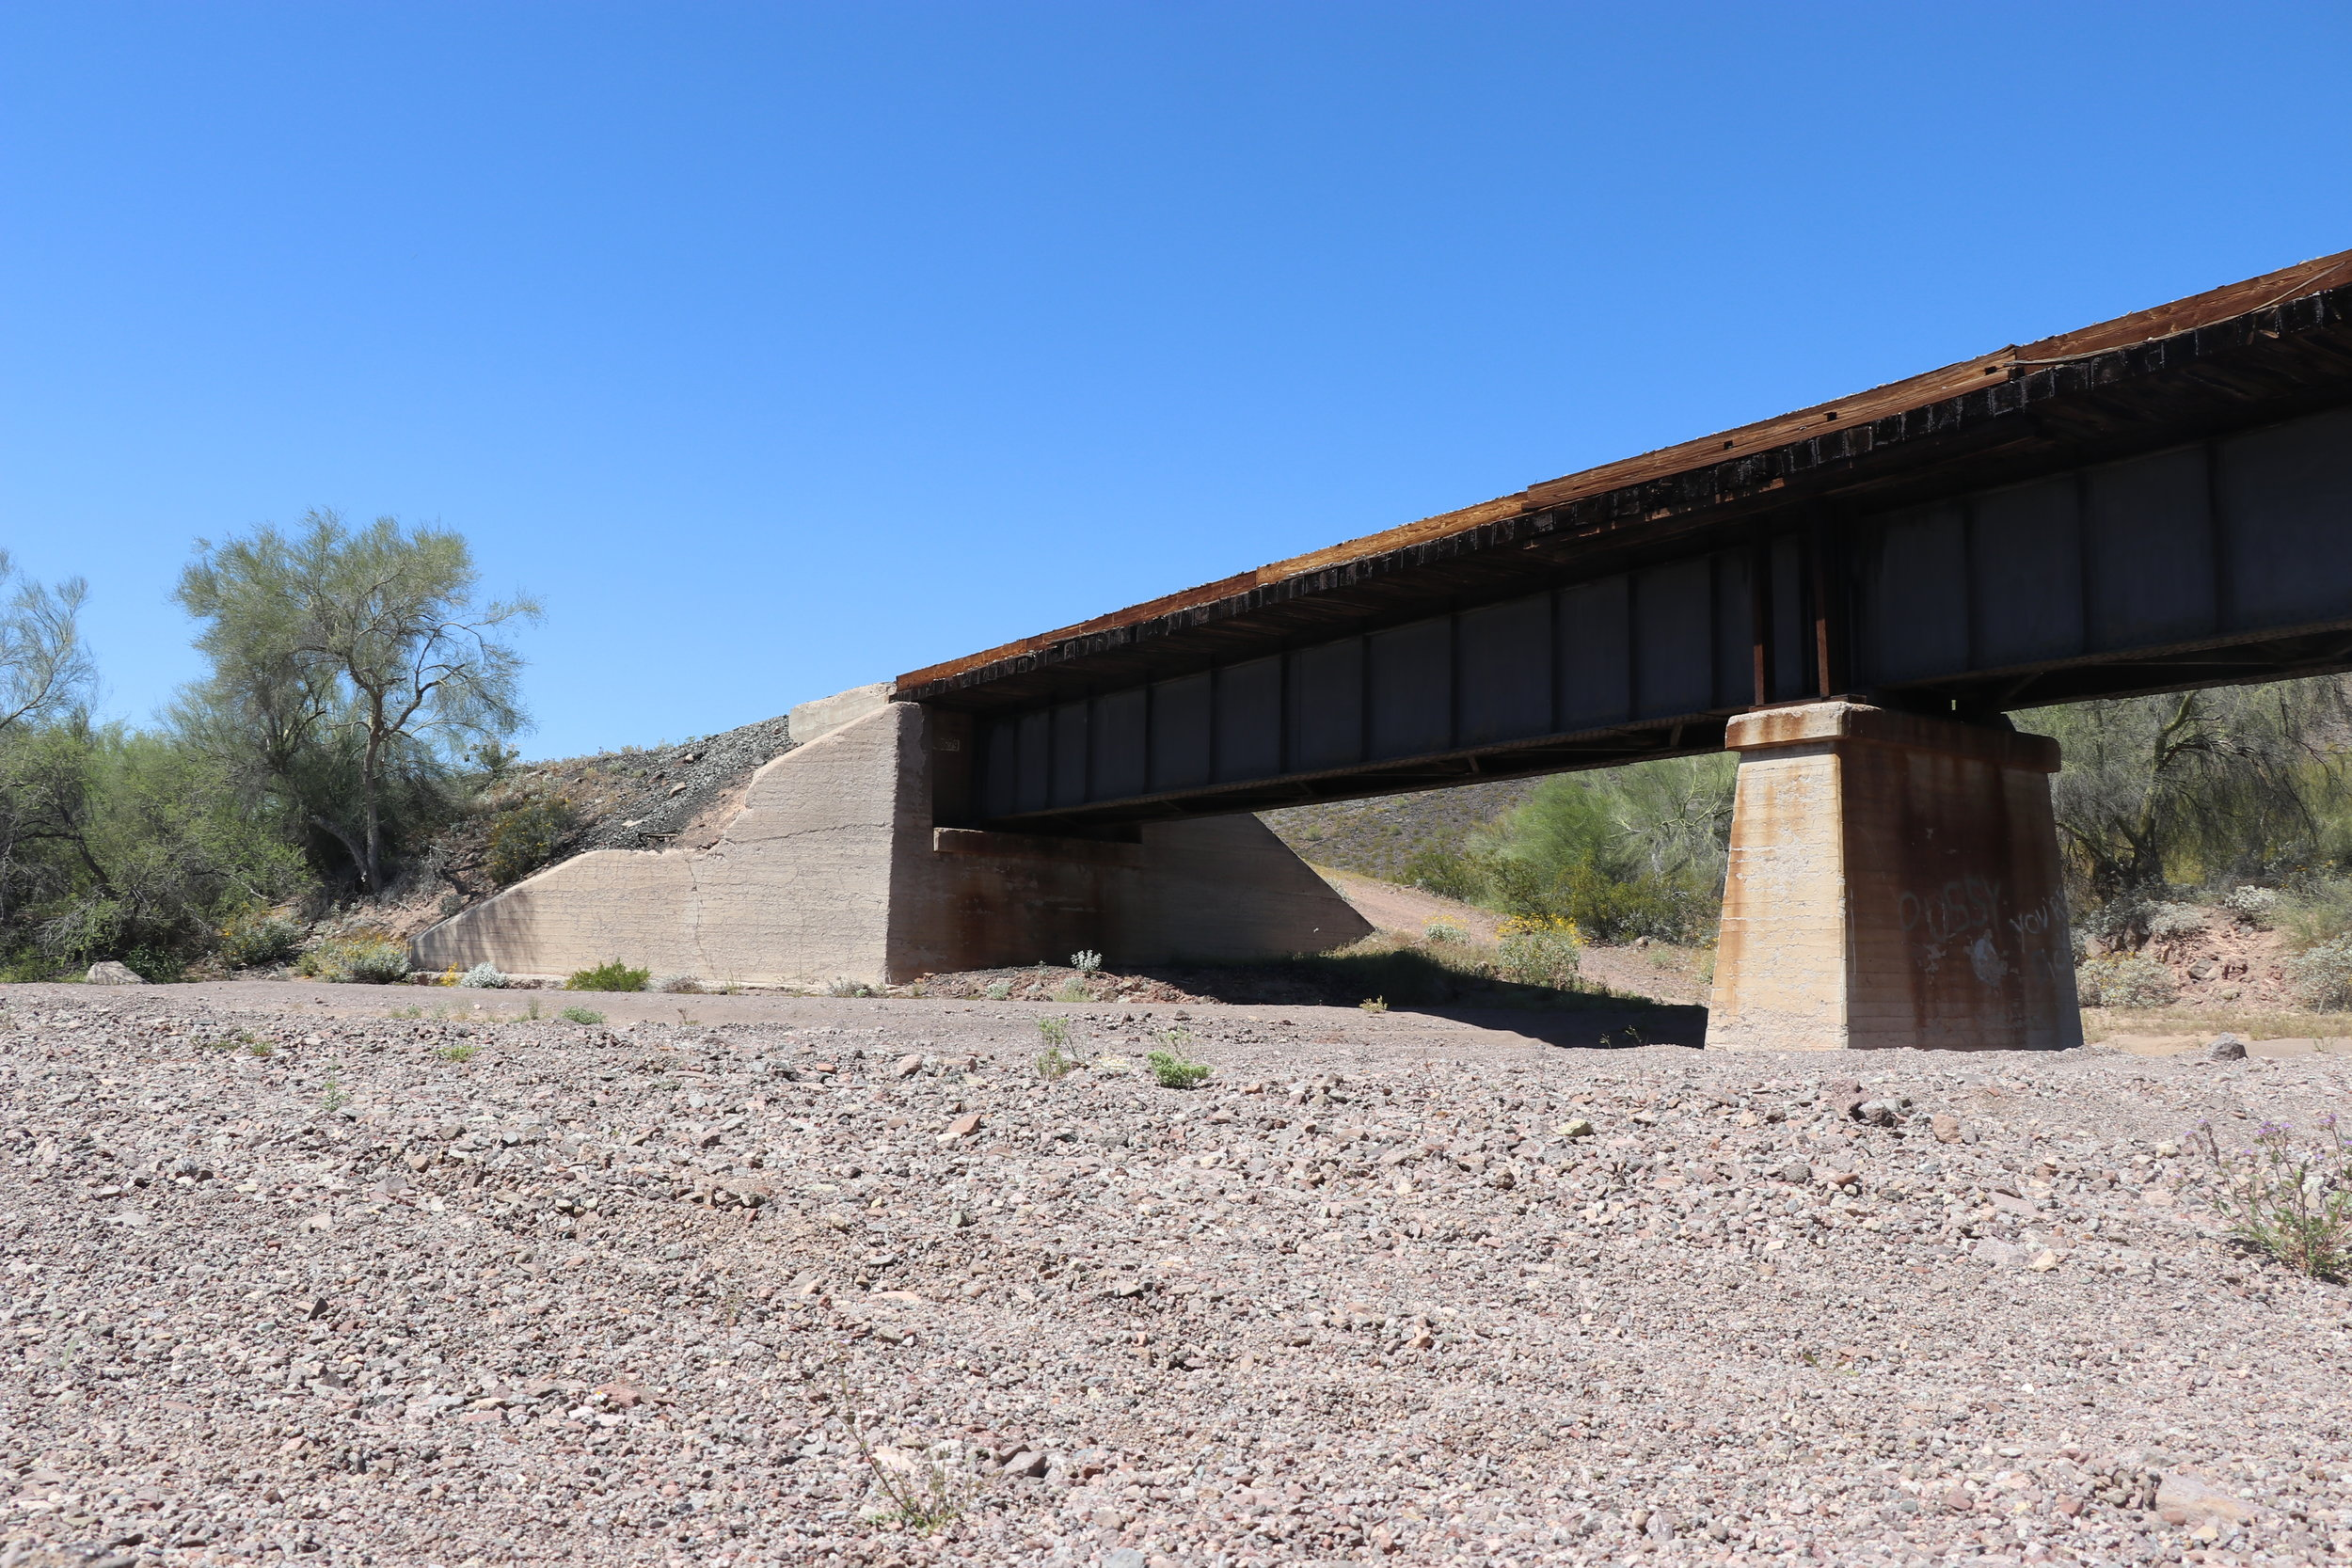 The concrete embankment (left) was damaged from the derailment.